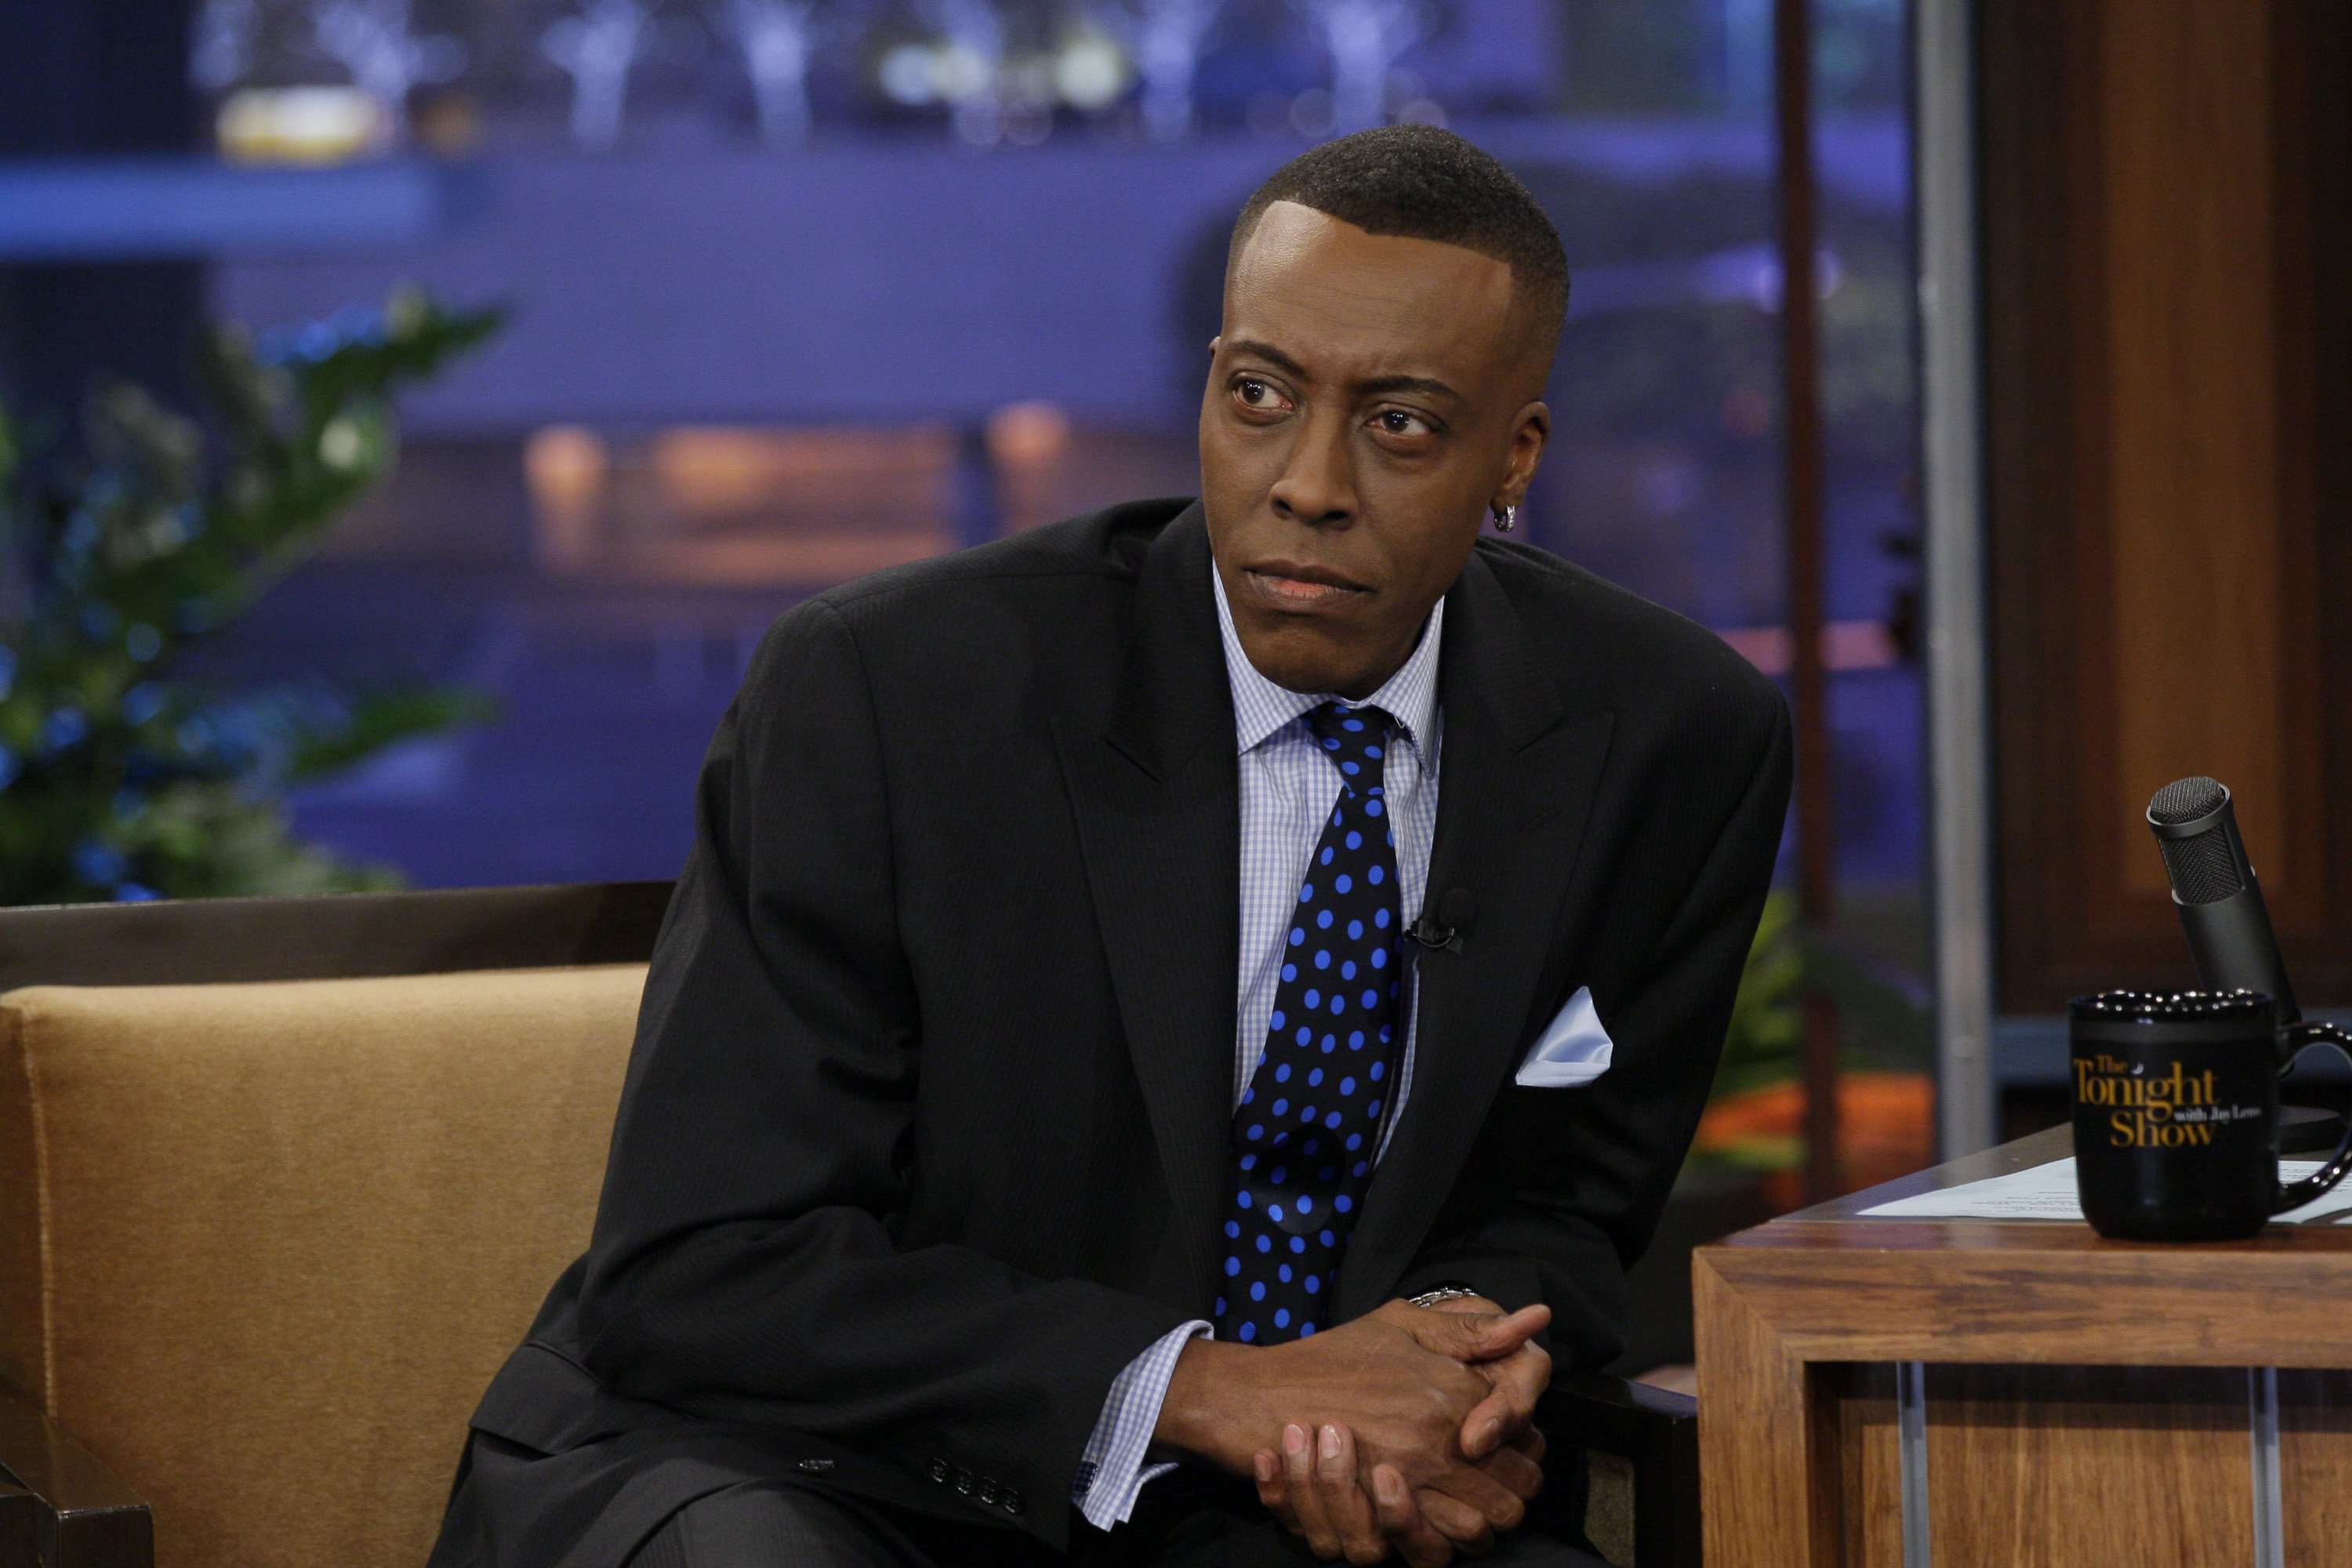 """Arsenio Hall during an interview on """"The Tonight Show with Jay Leno,"""" March 22, 2012 